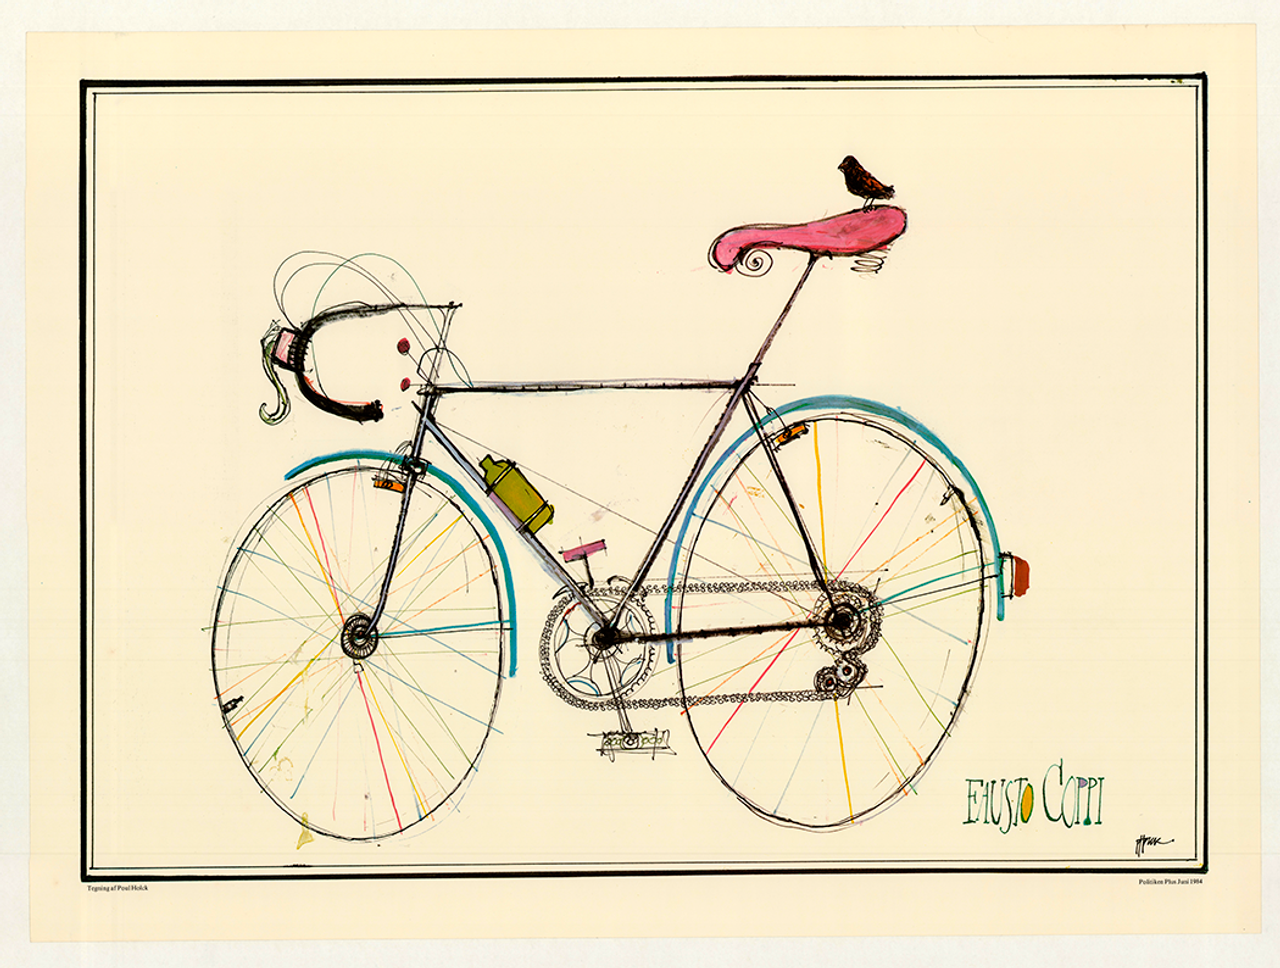 Fausto Coppi Bicycle by Paul Holck